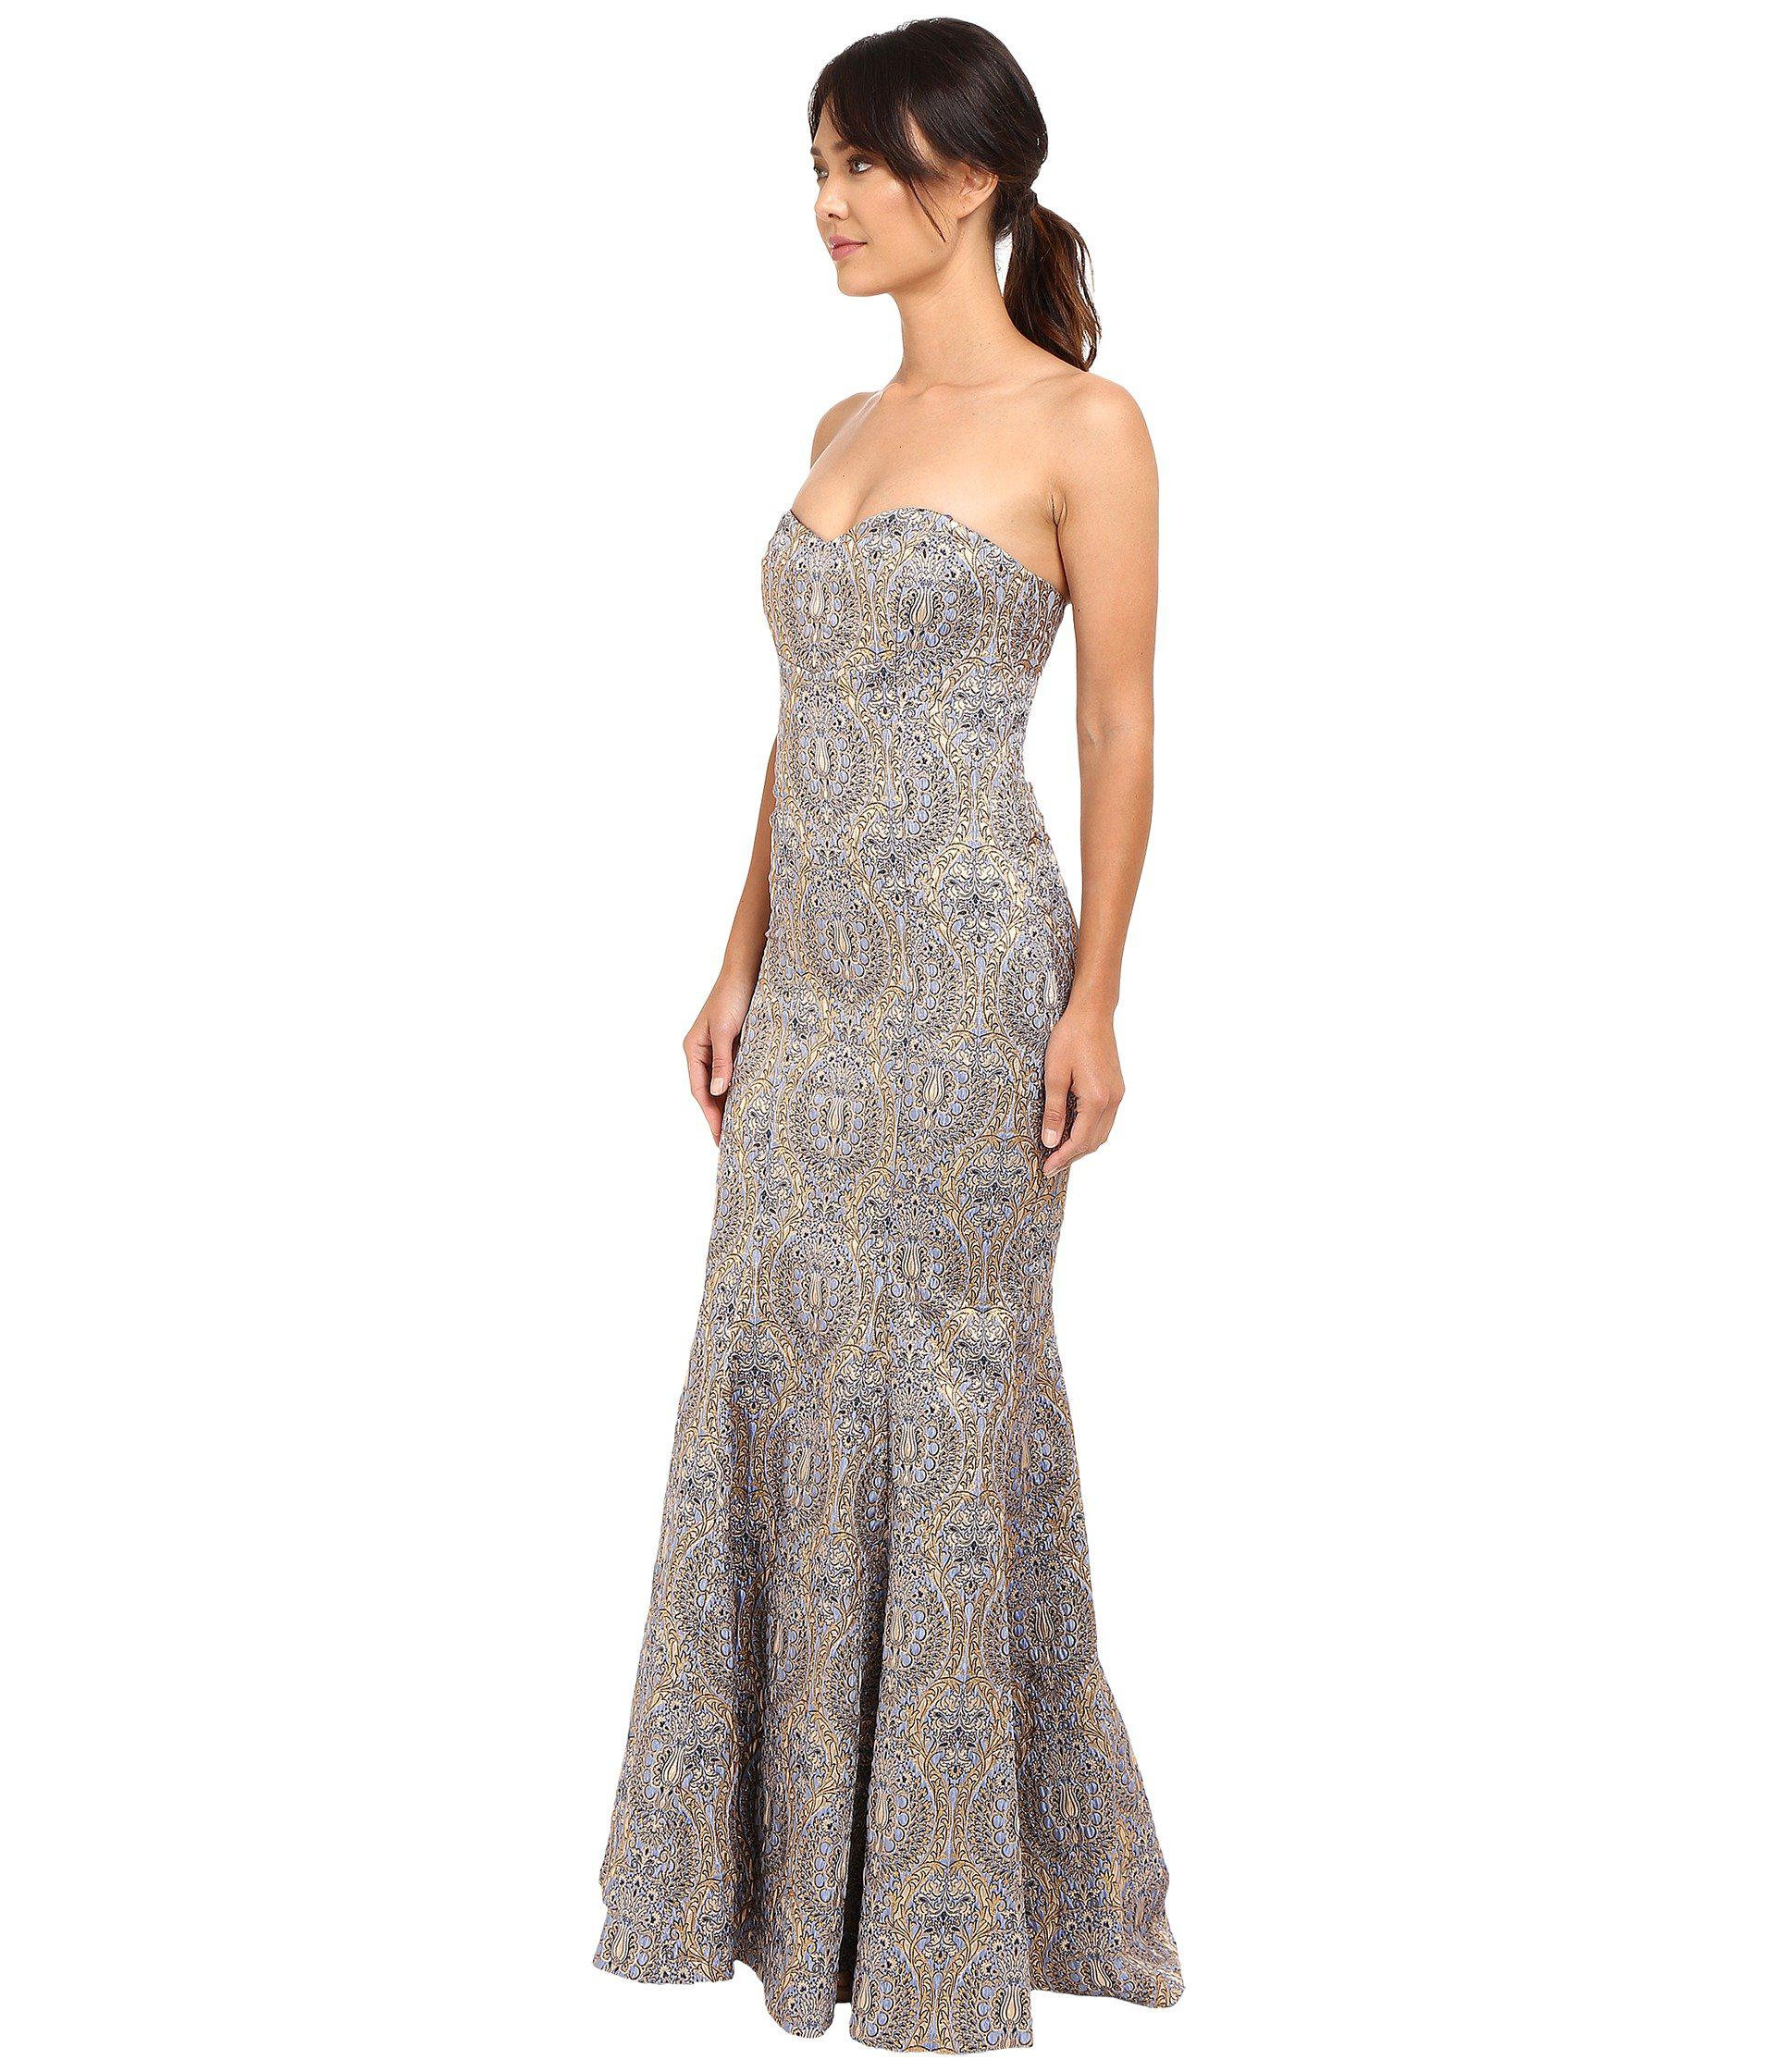 Fancy Nicole Miller Dakota Gown Motif - Wedding and flowers ...